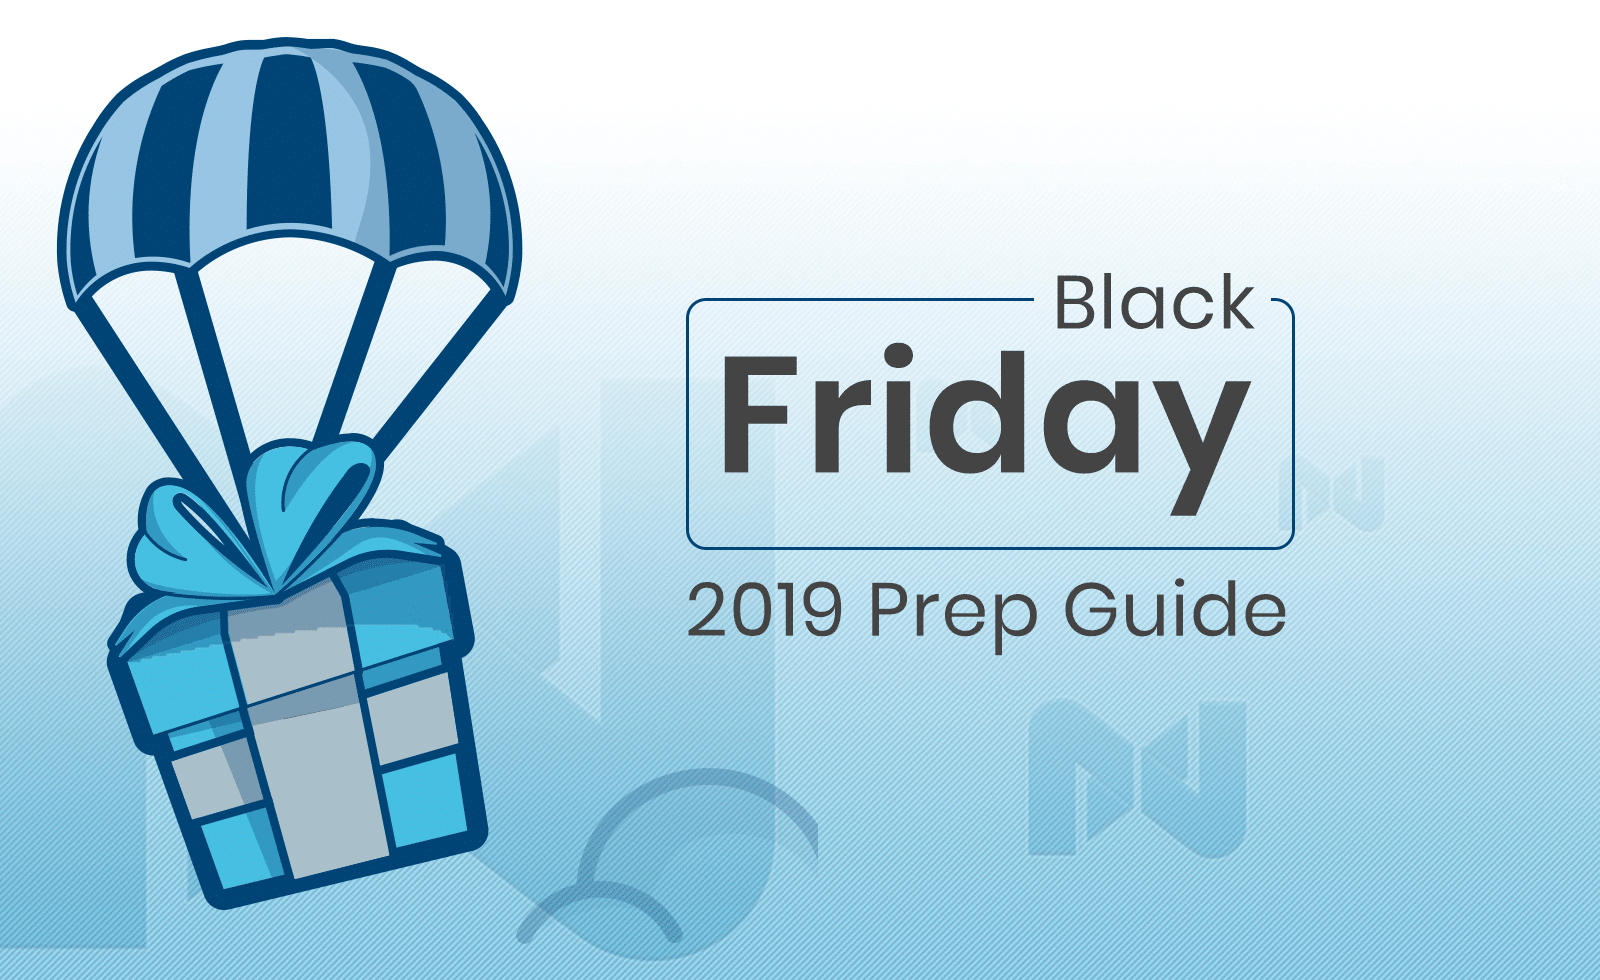 The 2019 Black Friday Ecommerce Prep Guide